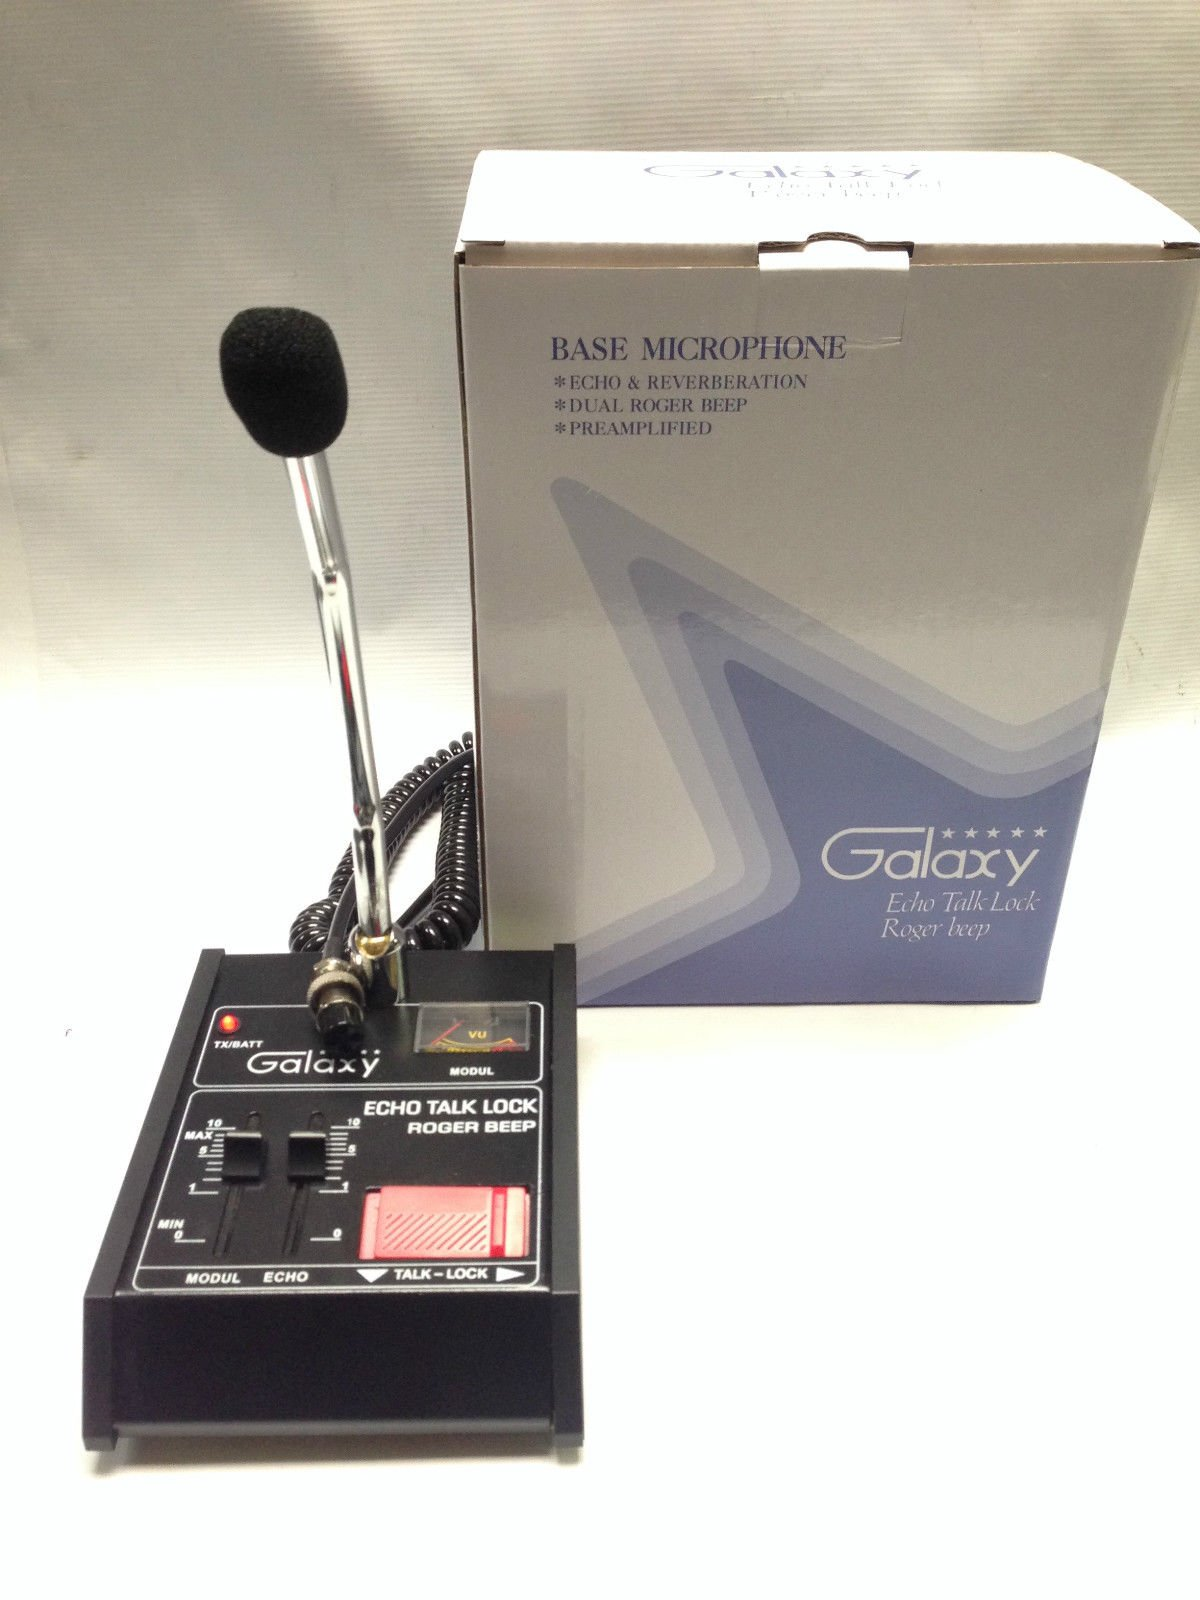 Galaxy Echomaster Roger Microphone wired